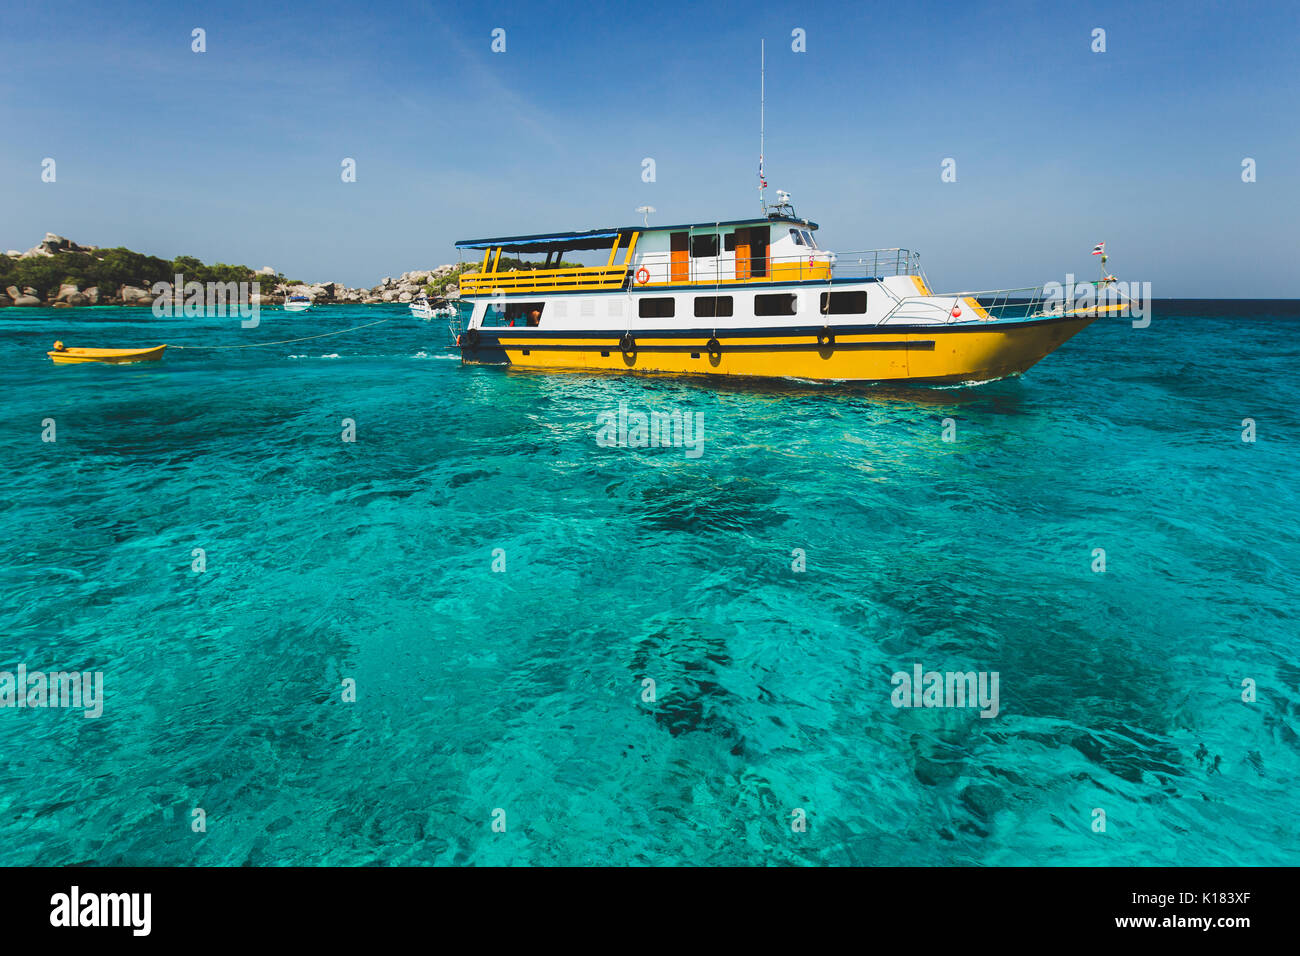 Tourist diving boat near island shore with turquoise clear transparent water. Idyllic view of Similan Islands - Stock Image